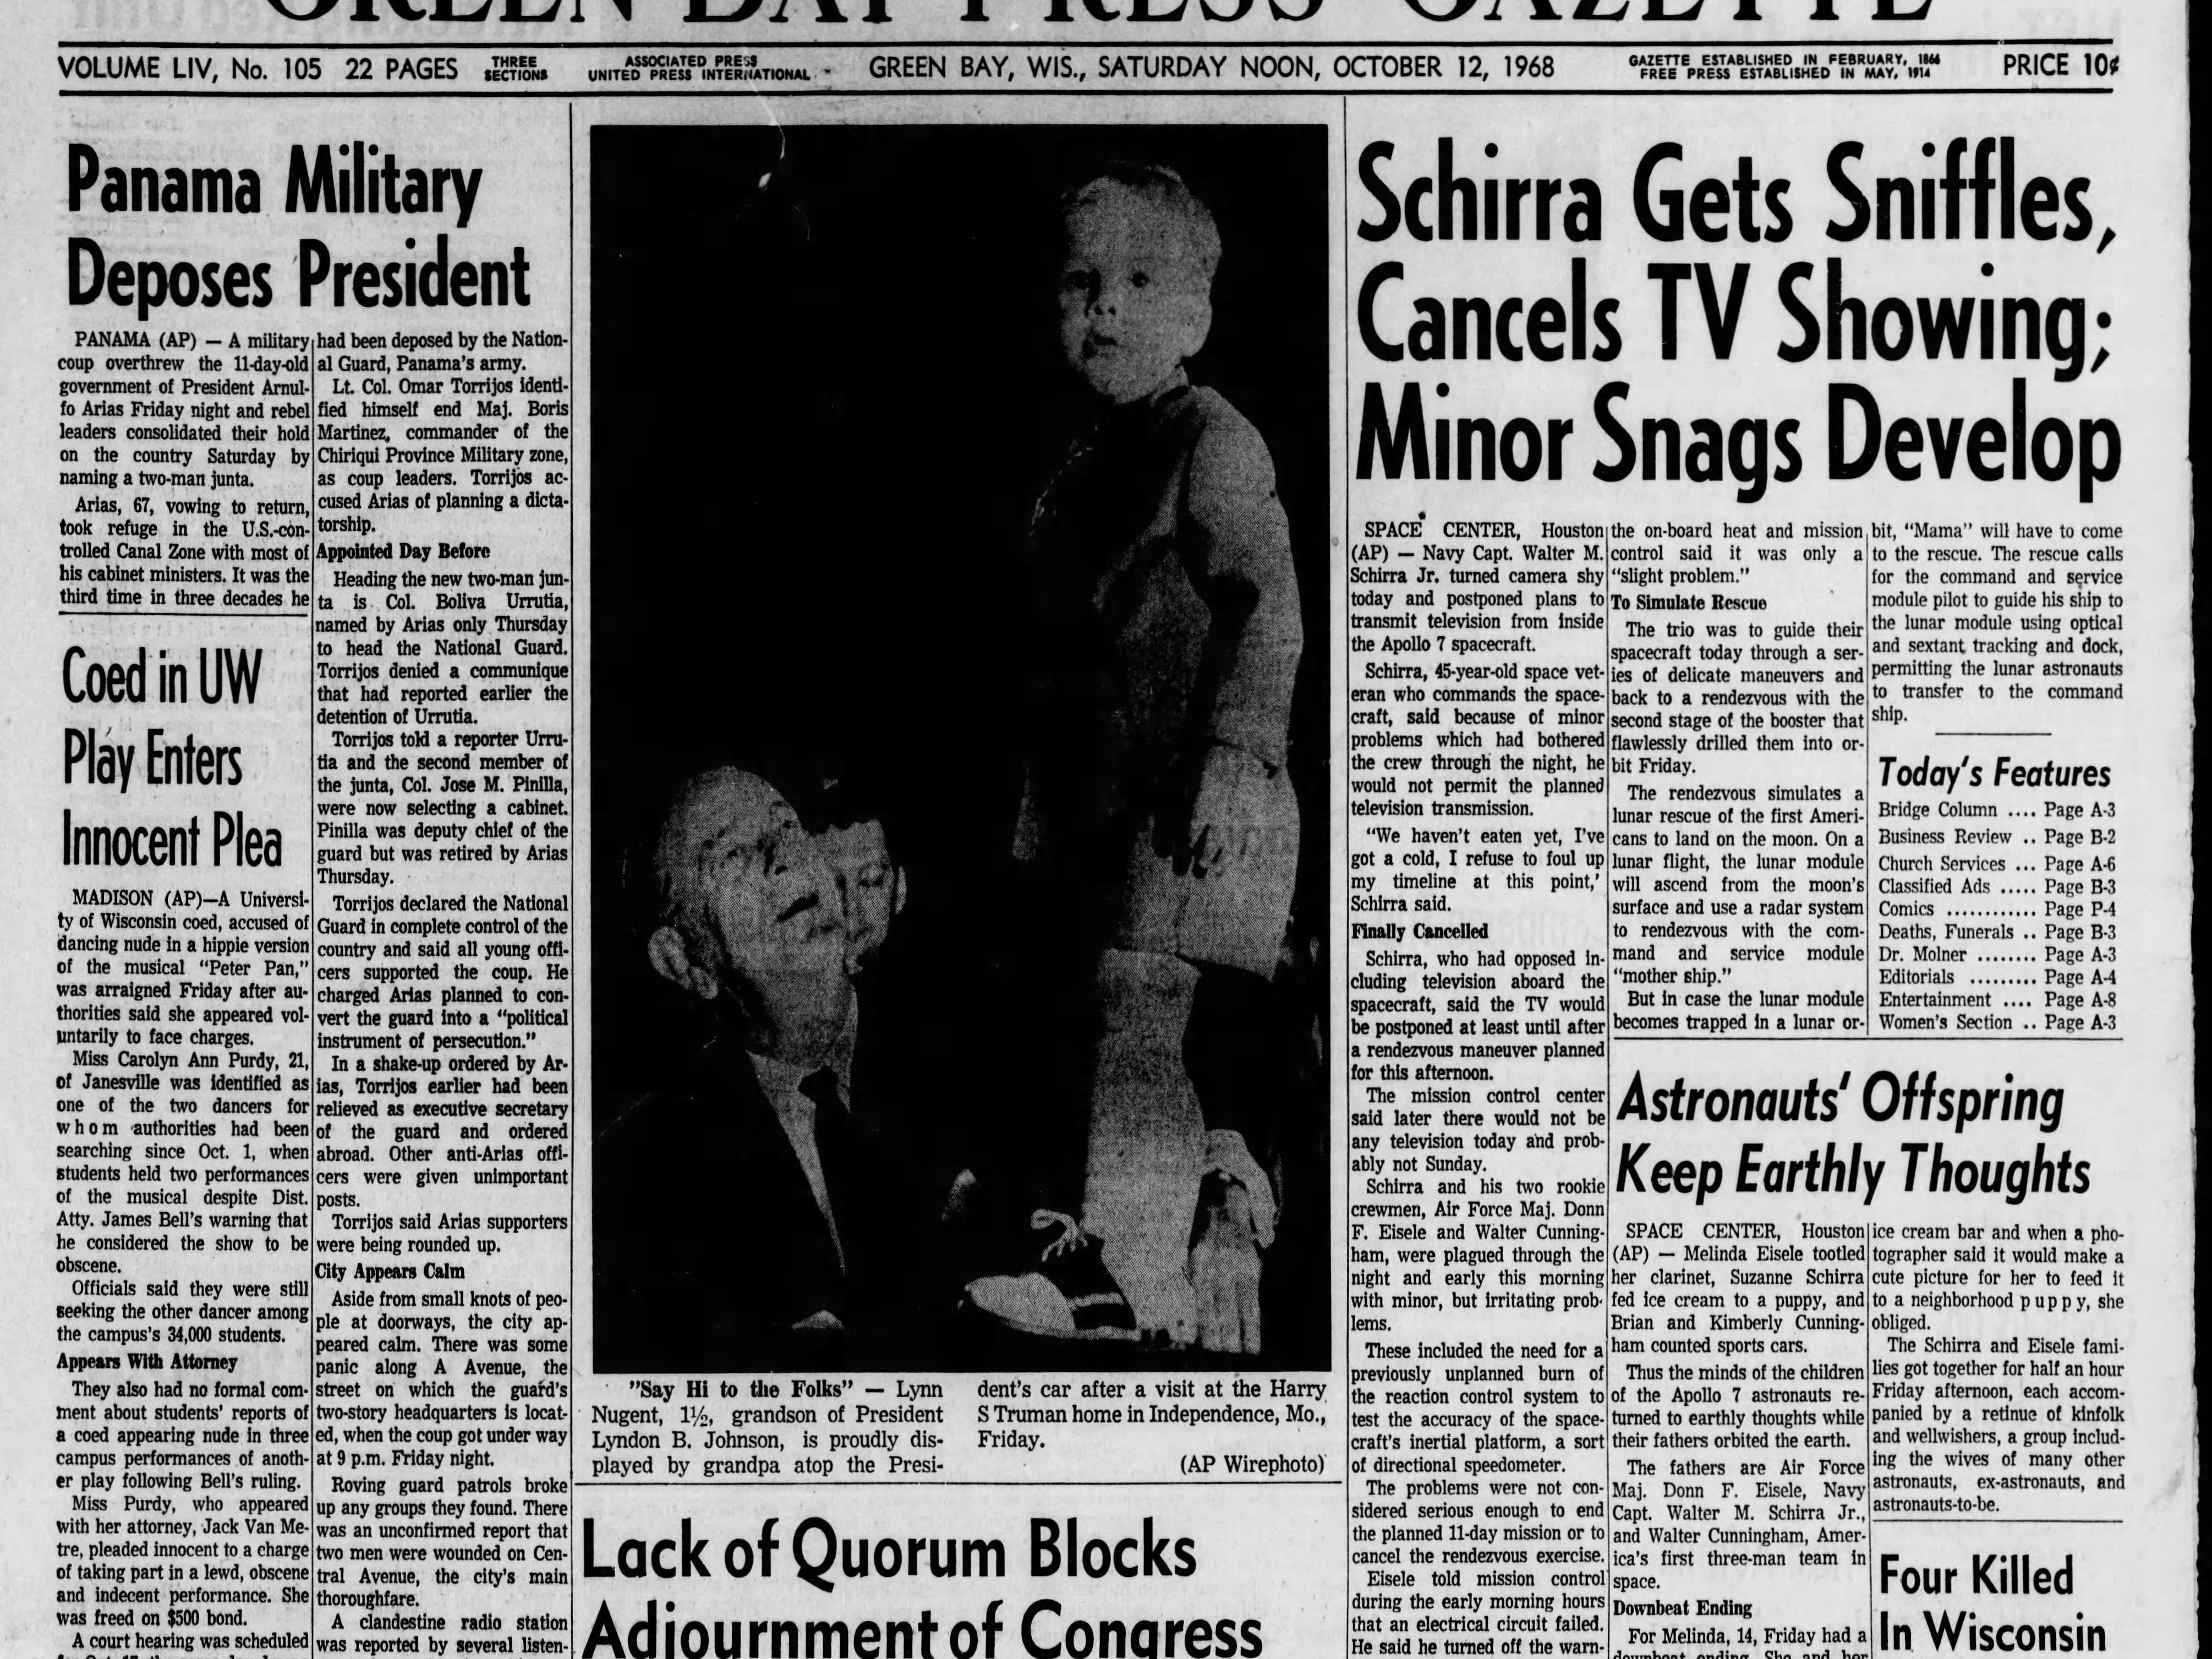 Today in History: Oct. 12, 1968